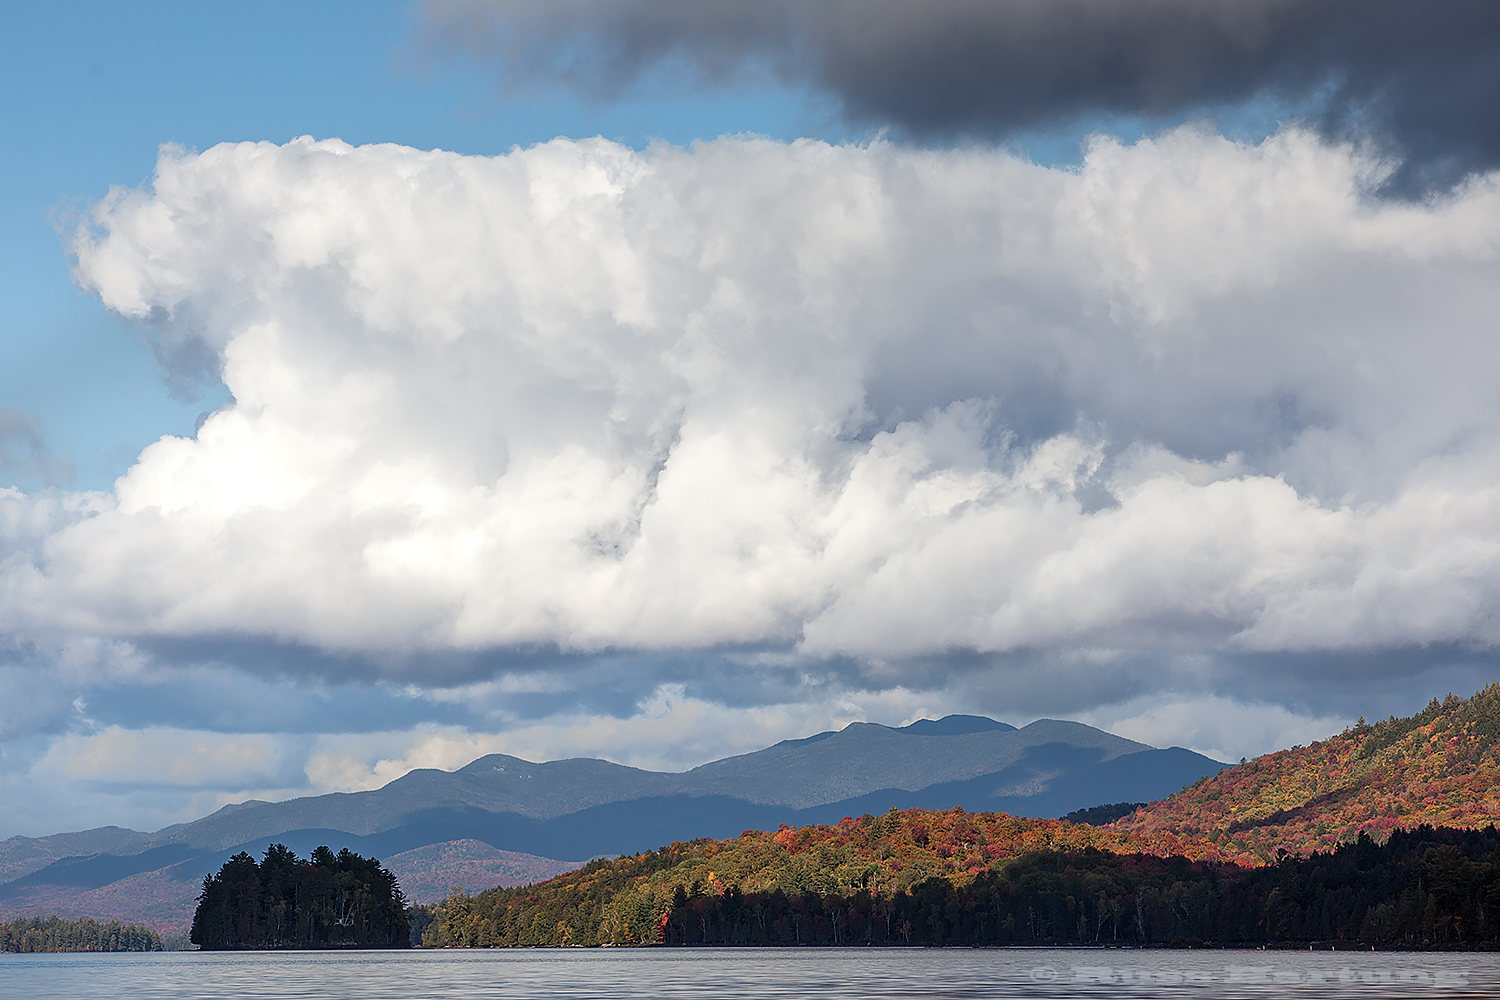 View from my kayak on Long Lake in early October.